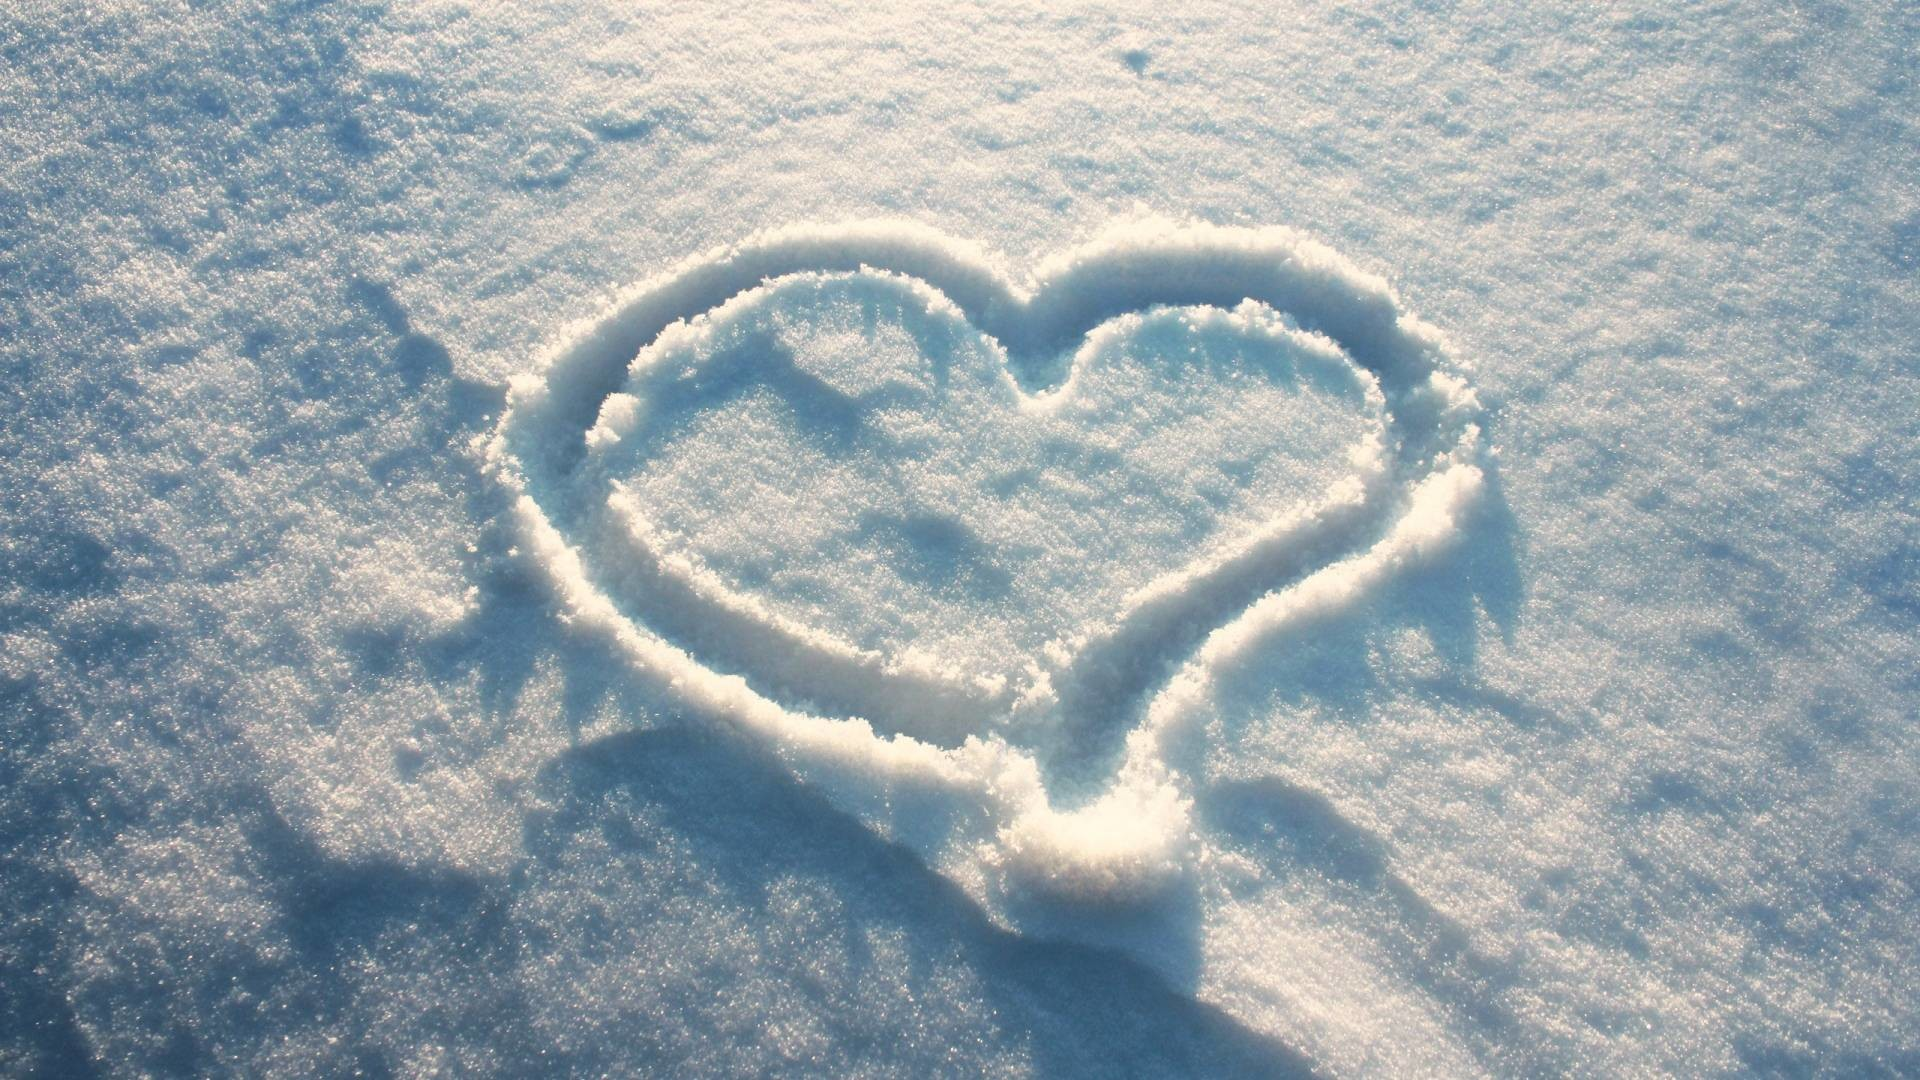 Wallpapers For > Cute Winter Background Tumblr